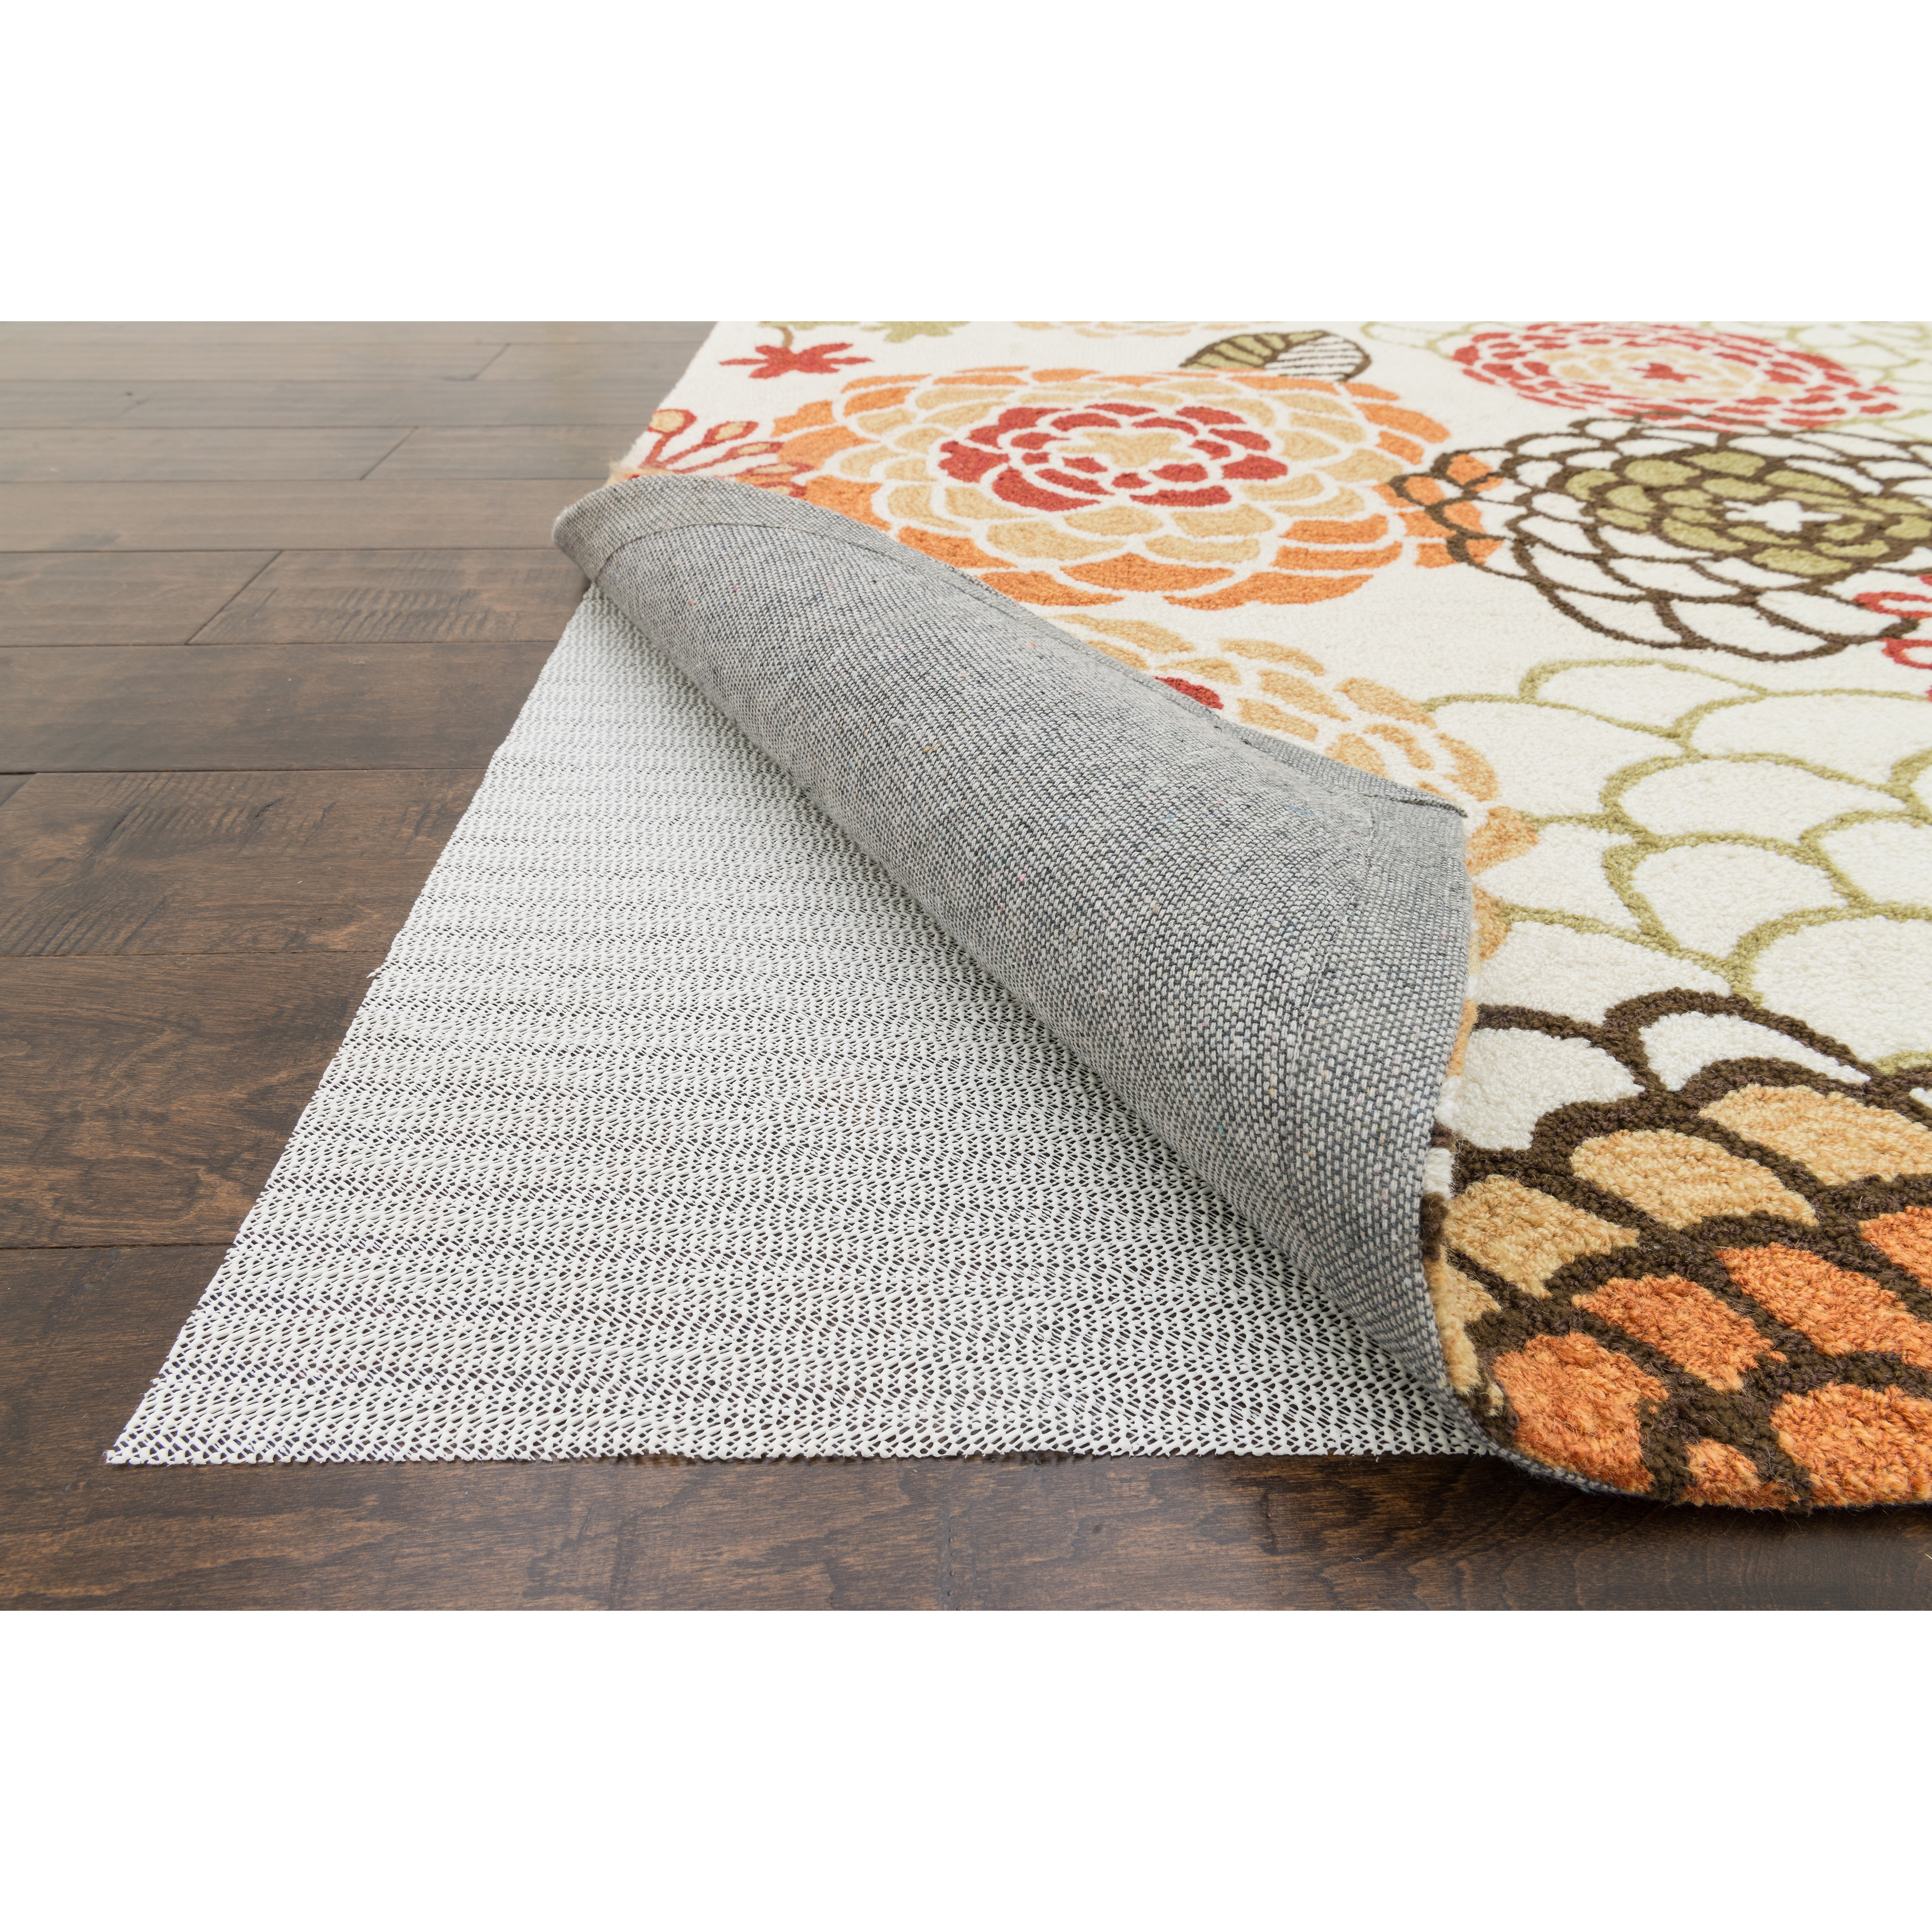 Alexander Home Sure Hold Non-slip Beige Rug Pad (3' x 5') by Overstock